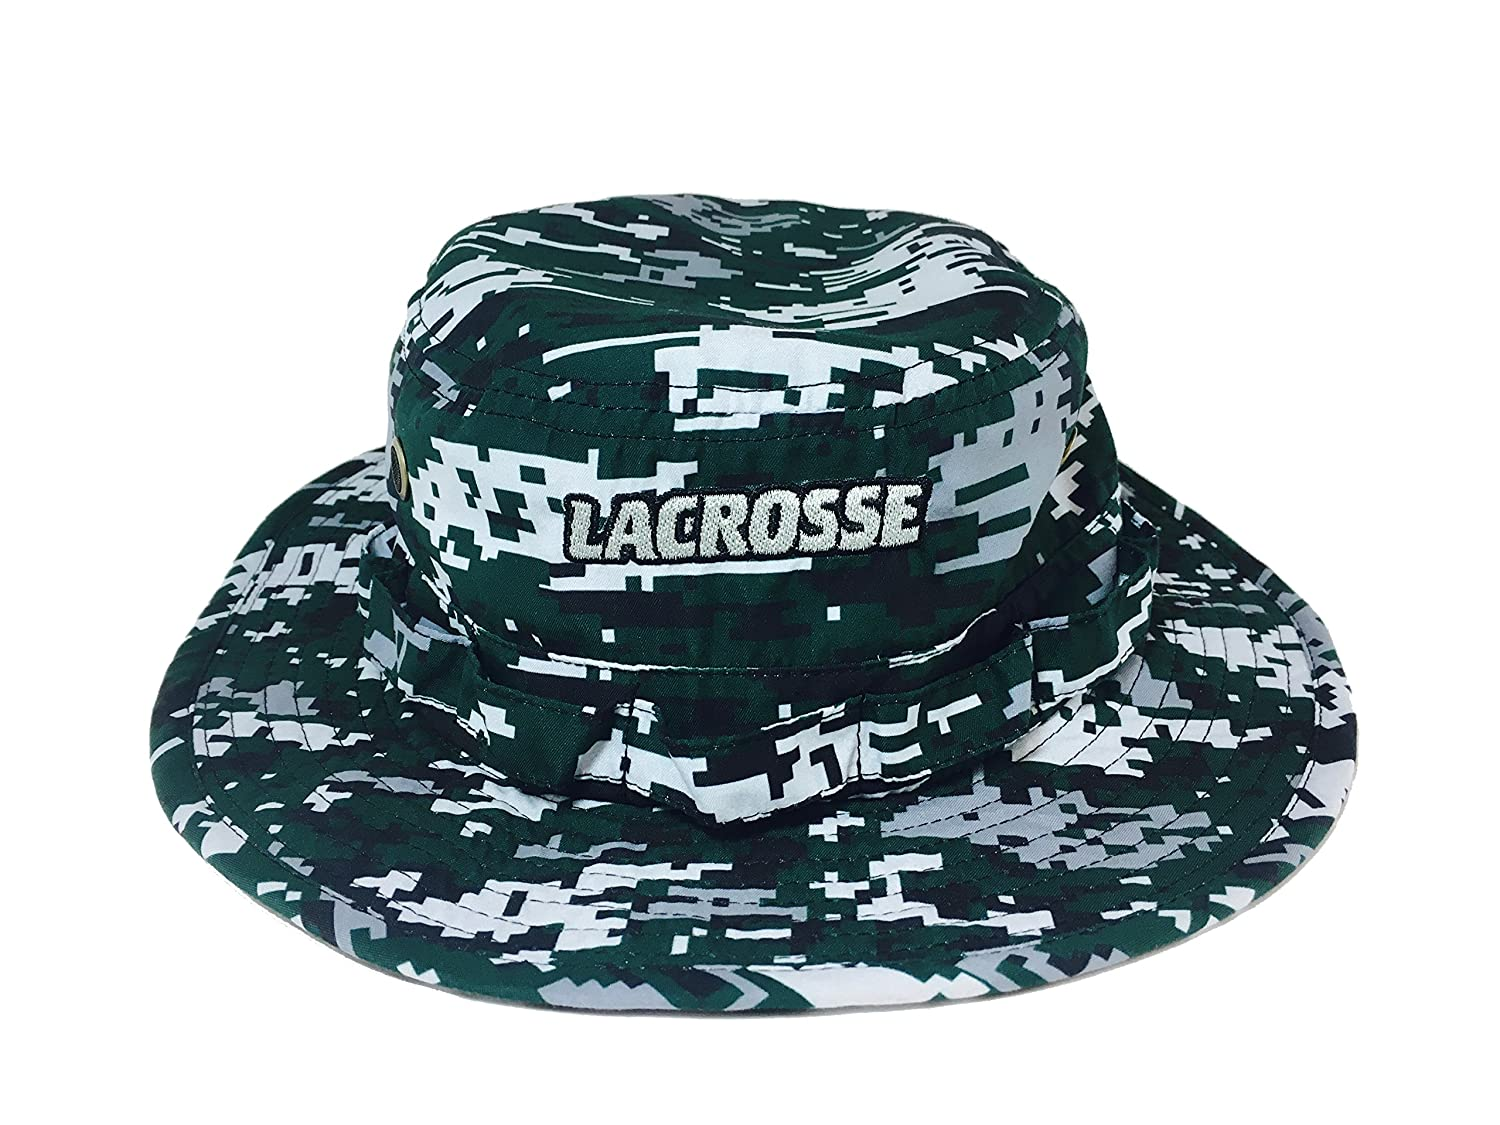 Lacrosse Digital Camo One Size Lax Bucket Hat 100% Polyester 1a03eb6f118